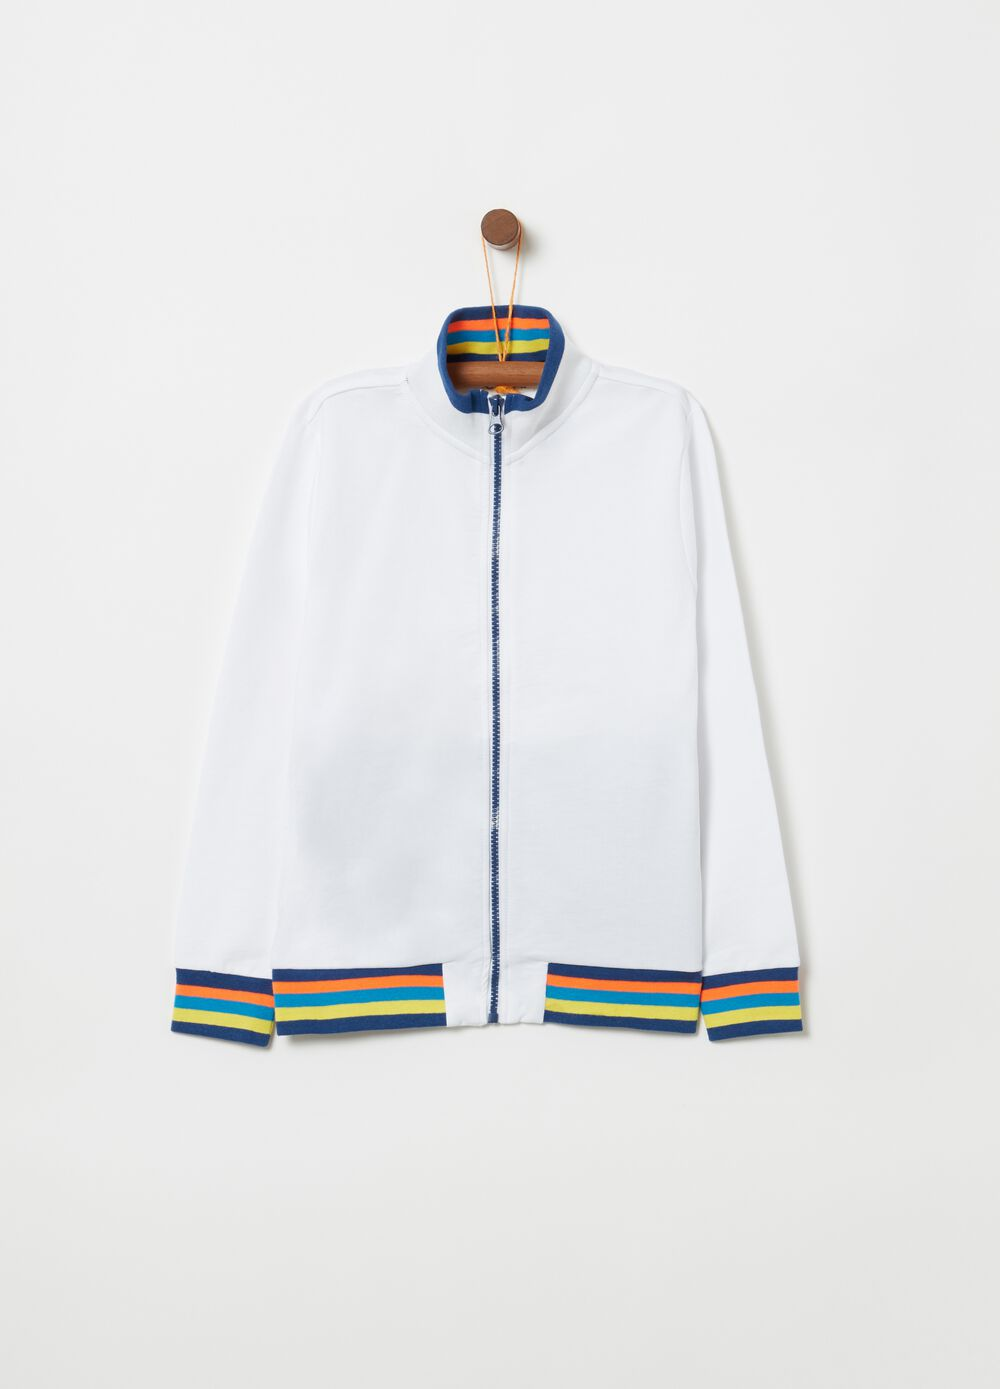 Full-zip sweatshirt with high neck and striped print